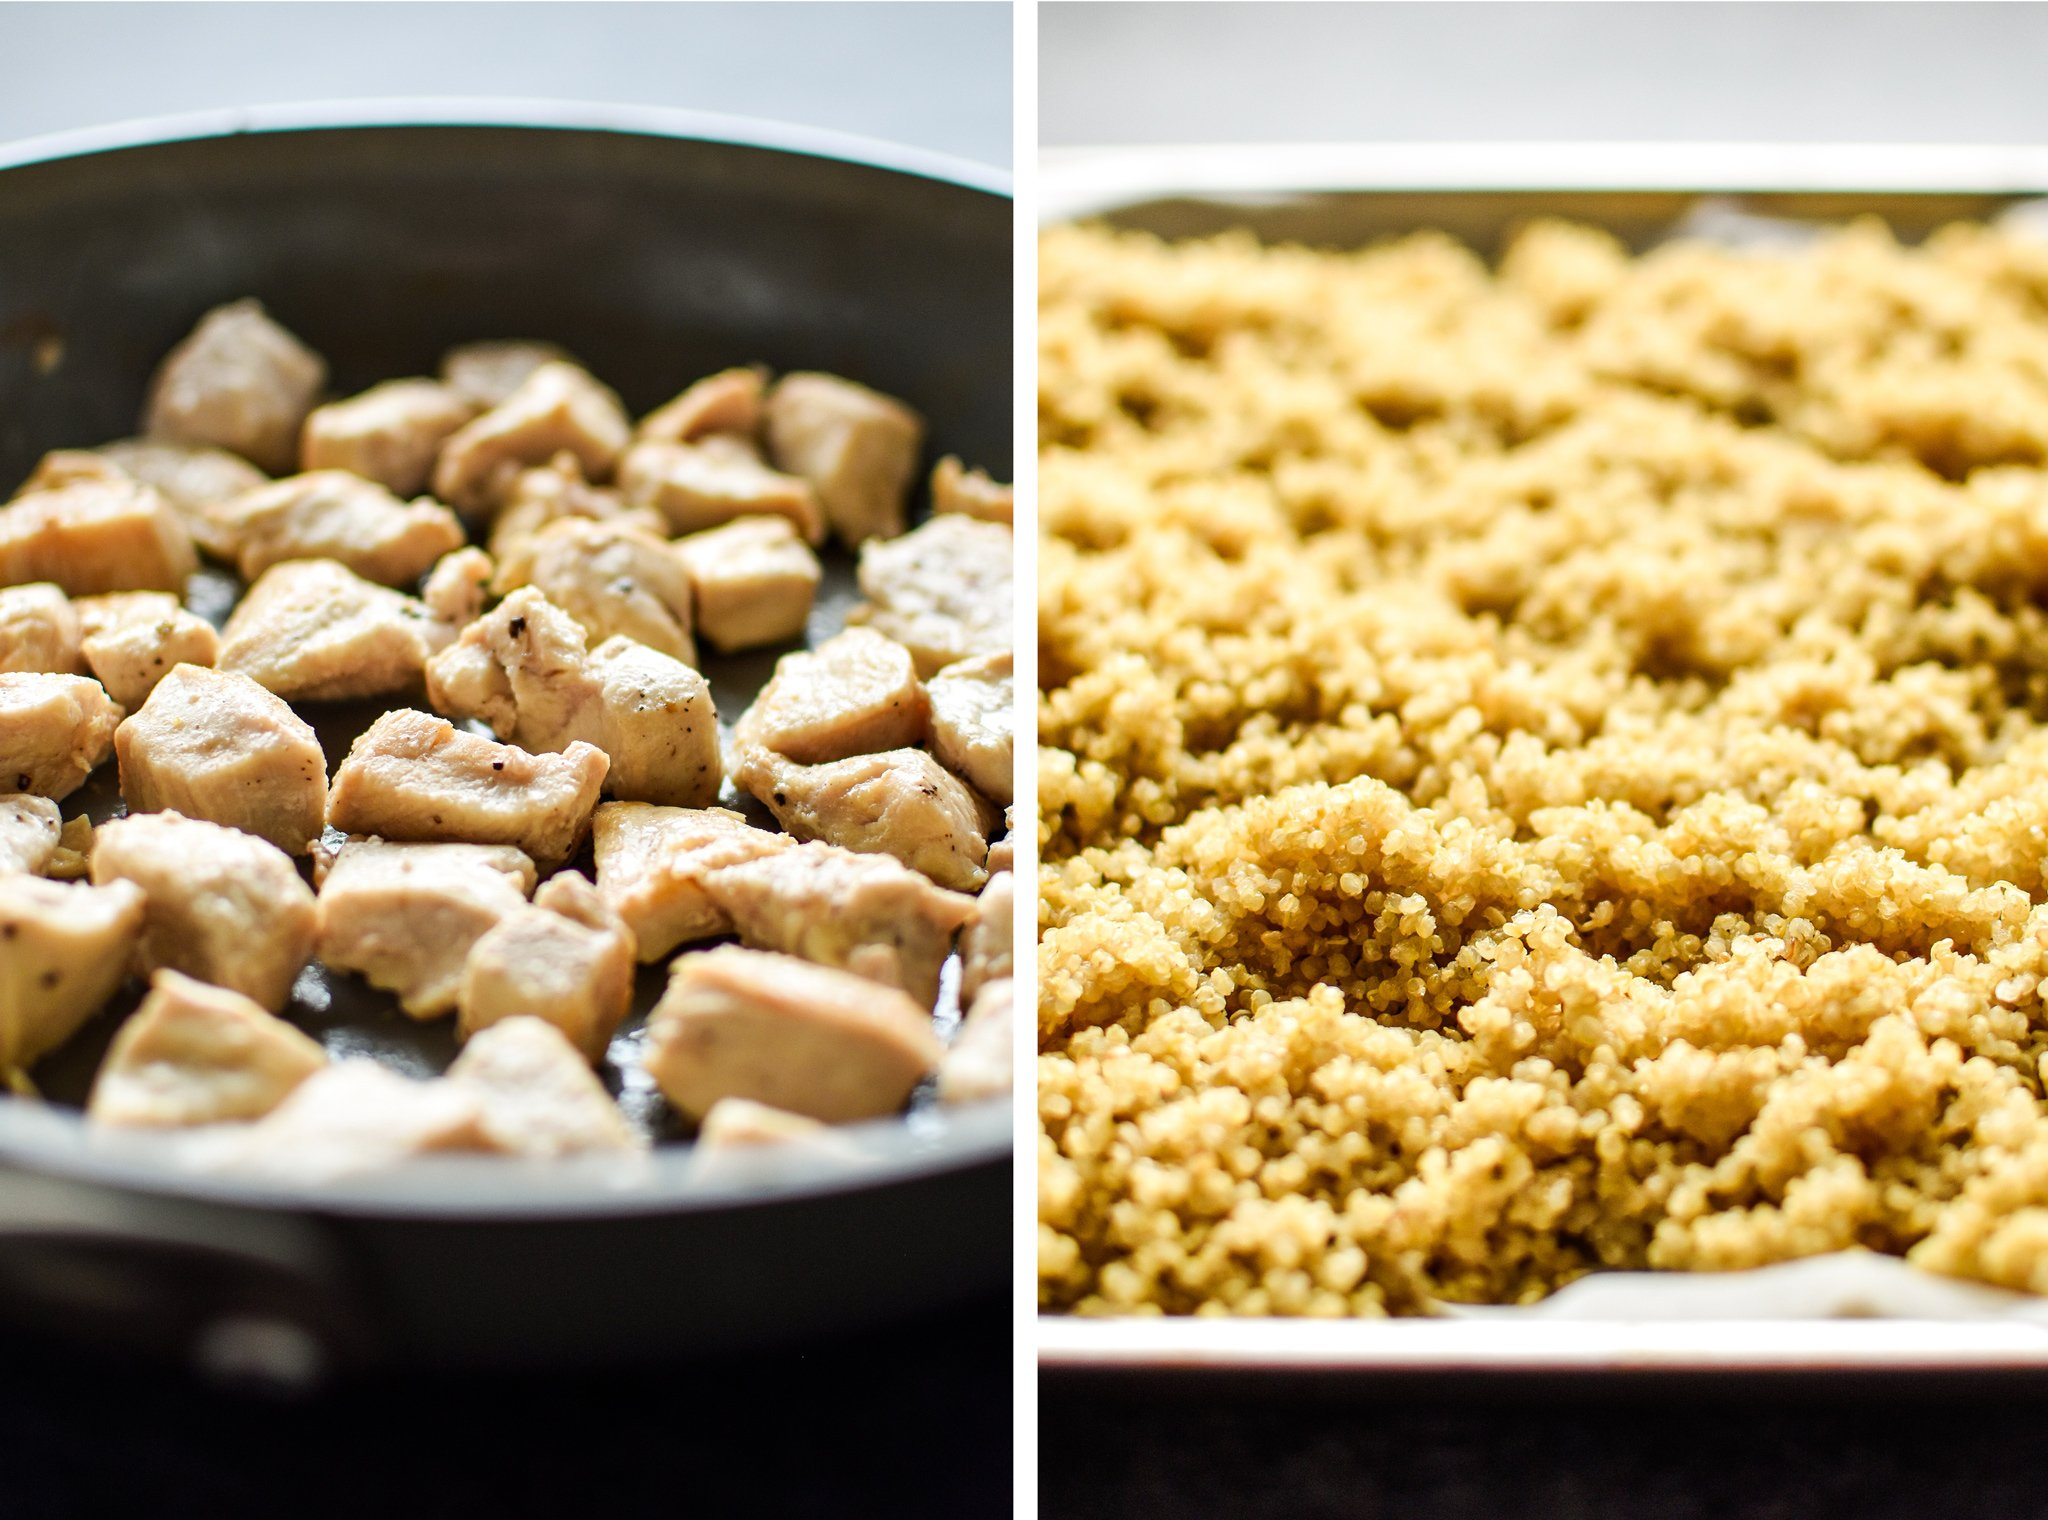 Left: Cooked chicken in a non stick pan. Right: Cooked quinoa cooling on a baking sheet.